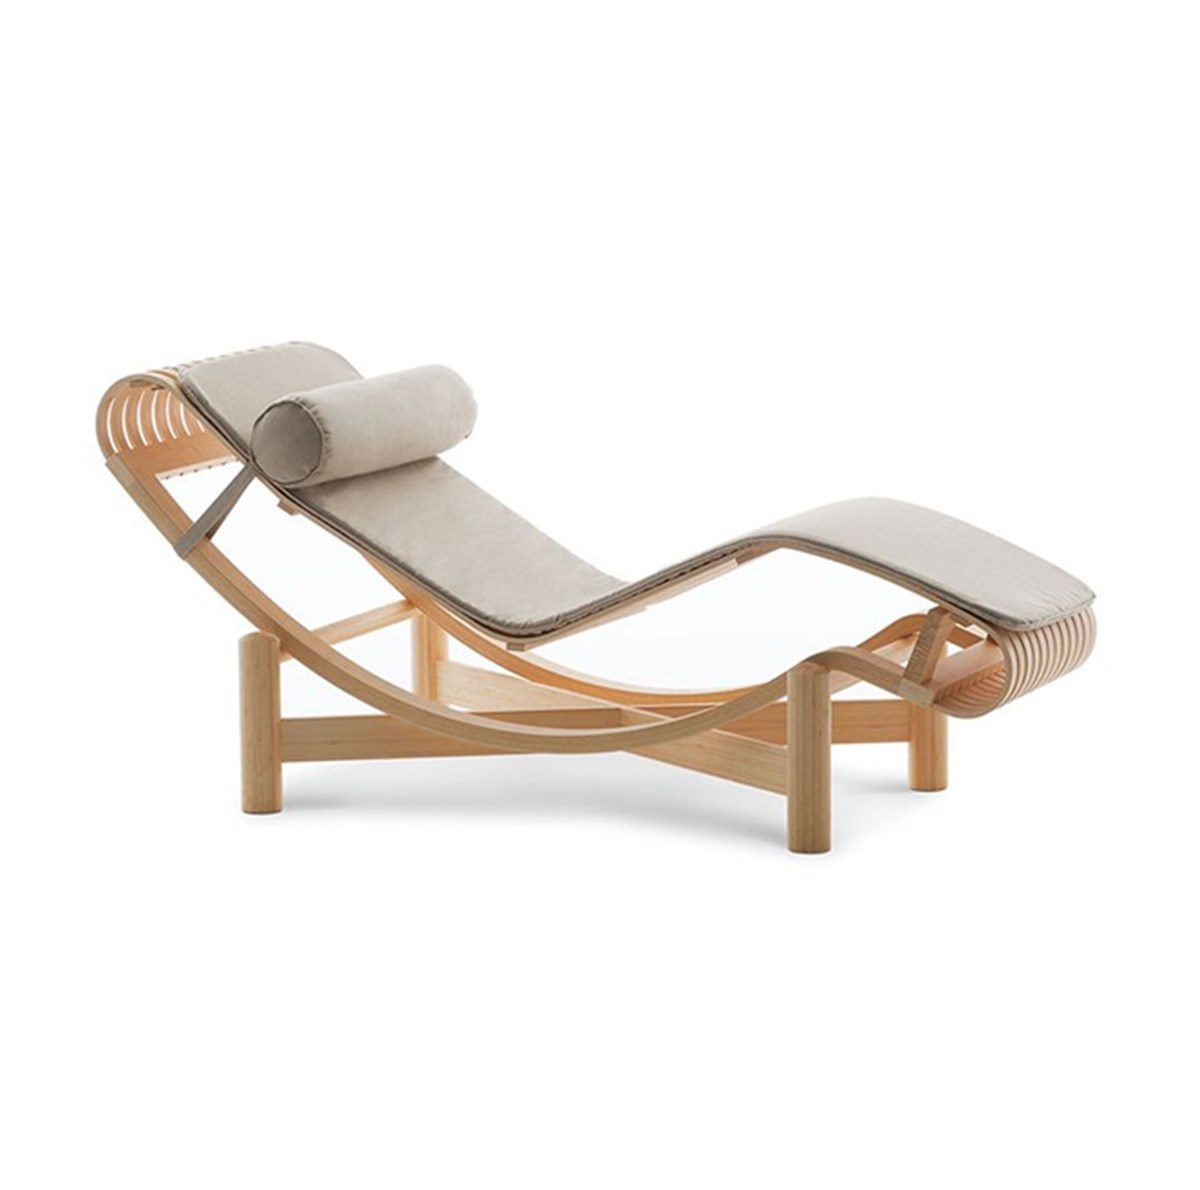 Cassina-Charlotte-Perriand-Tokyo-Chaise-Longue-Outdoor-Matisse-1